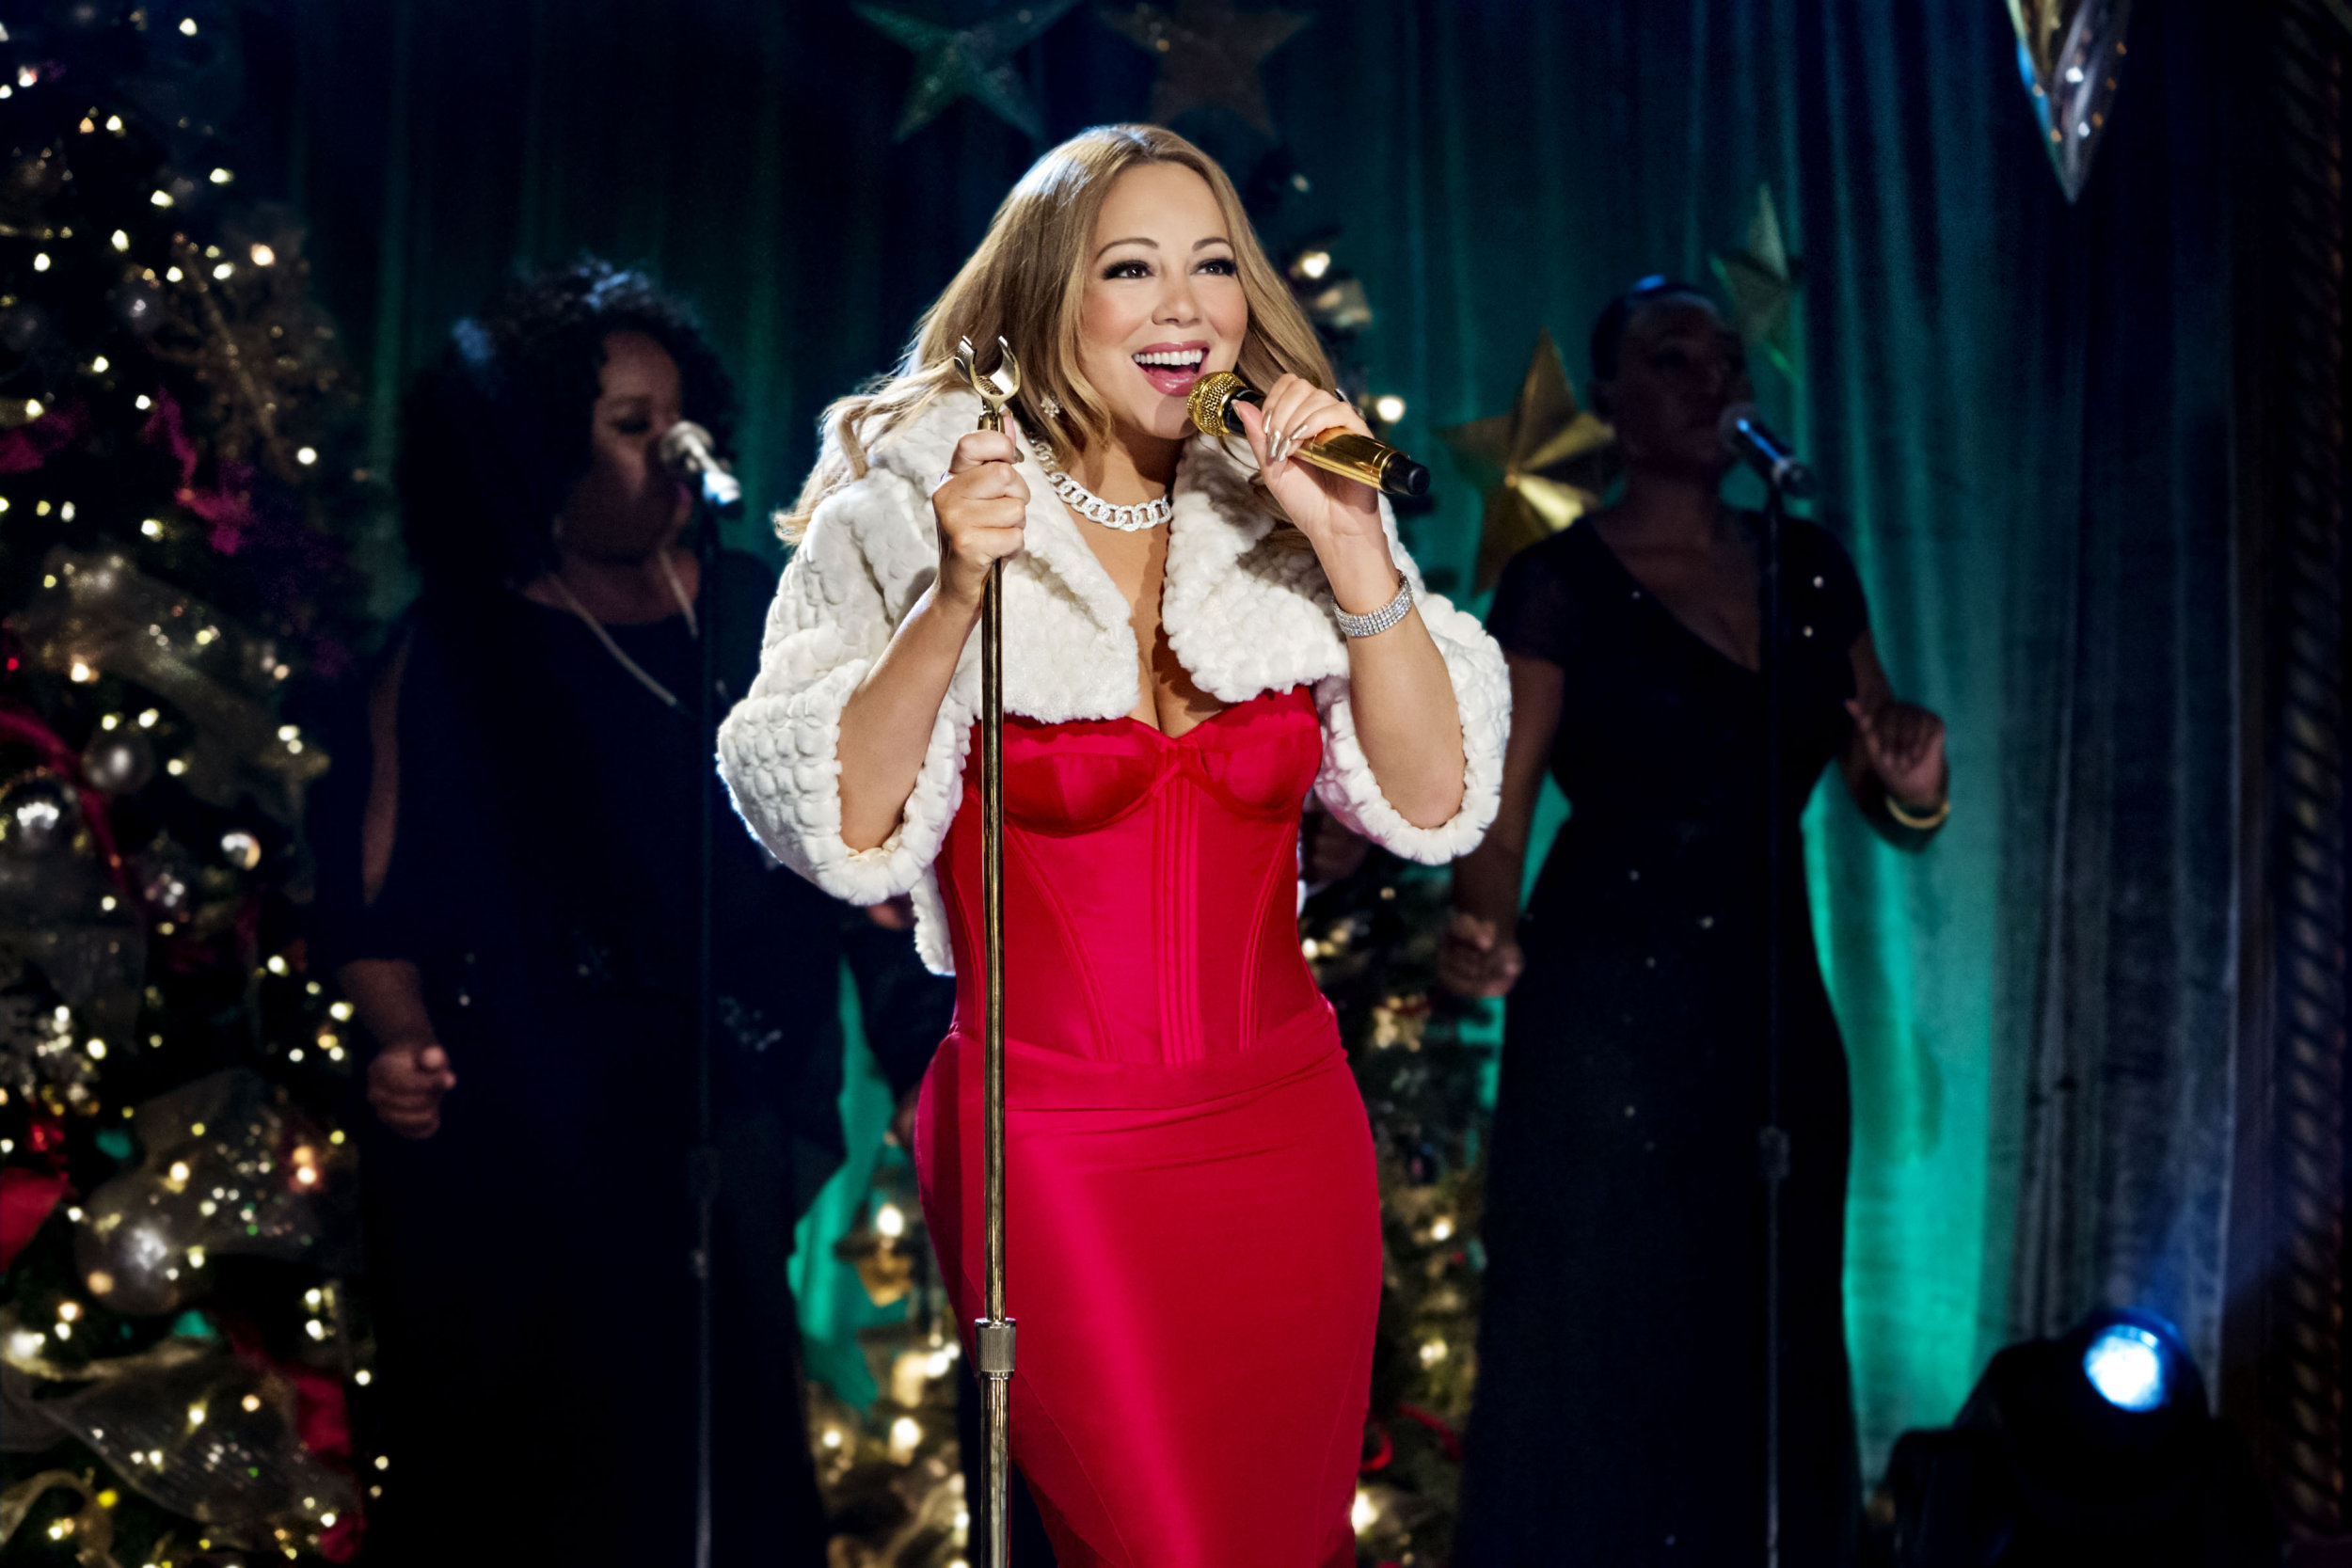 Mariah Carey Announces 'All I Want For Christmas Tour' US Dates ...